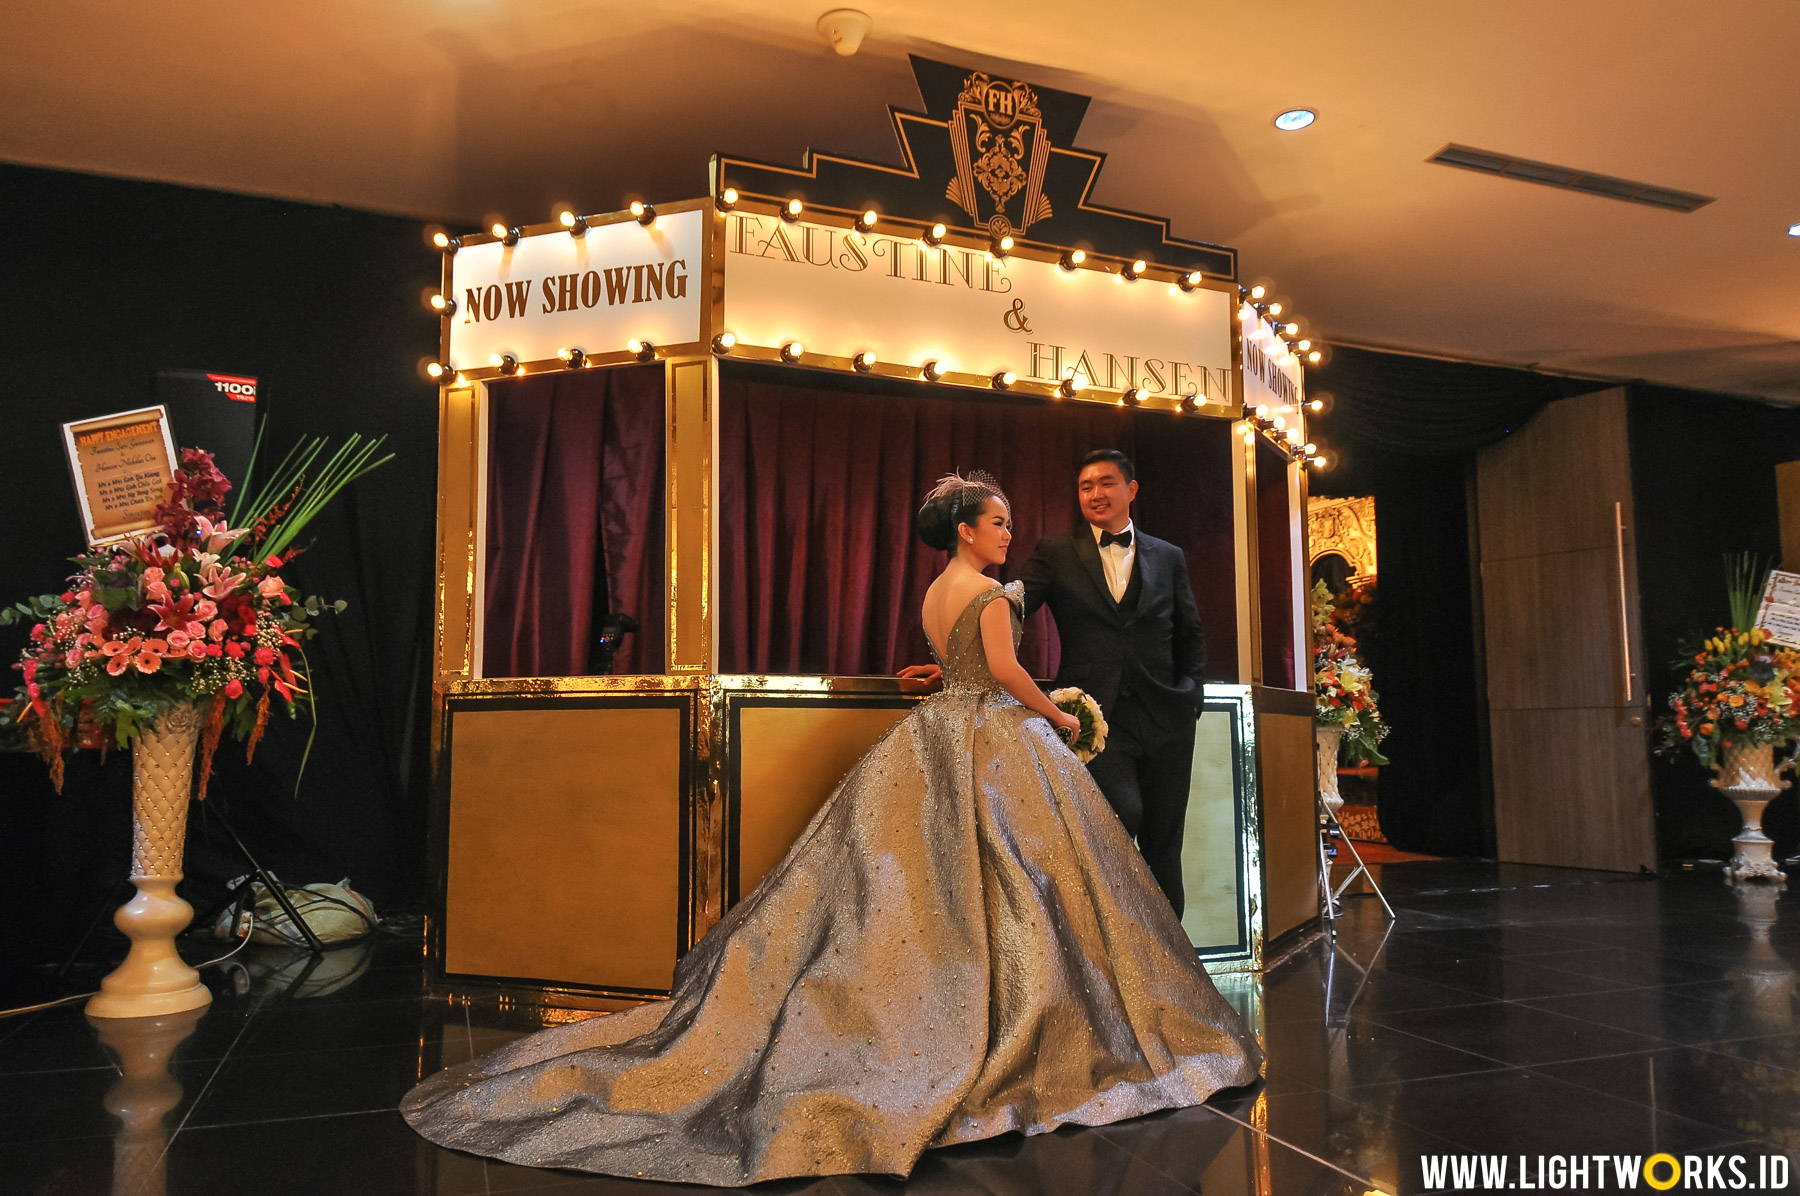 Hansen and Faustine' wedding reception | Venue at Grand Inna Padang | Decoration by Lavender Decoration | Organised by Multi Kreasi Enterprise | Entertainment by All Star Music Entertainment | MC: Ary Kirana, Kemal Mochtar | Gown by Yefta Gunawan | Photo by Gusde Photography | Dancer by Batavia Dancer | Photobooth by Planopaper Photobooth Padang | Souvenir by Mattice | Lighting designer: Mr. Alvin Soo | Lighting equipment by Lightworks